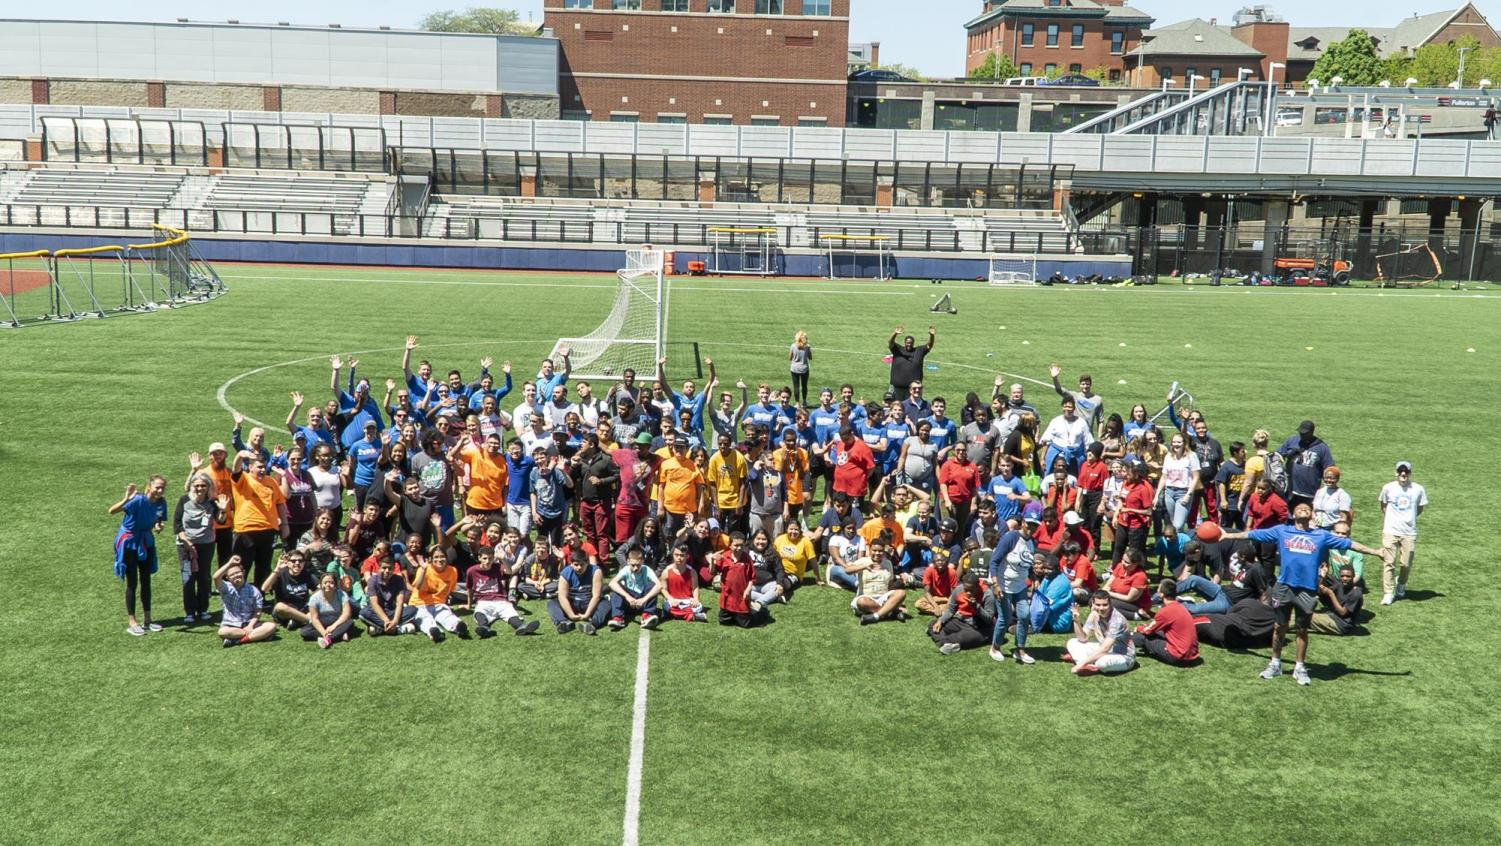 DePaul partnered with special olympics Chicago to host a sporting event known as